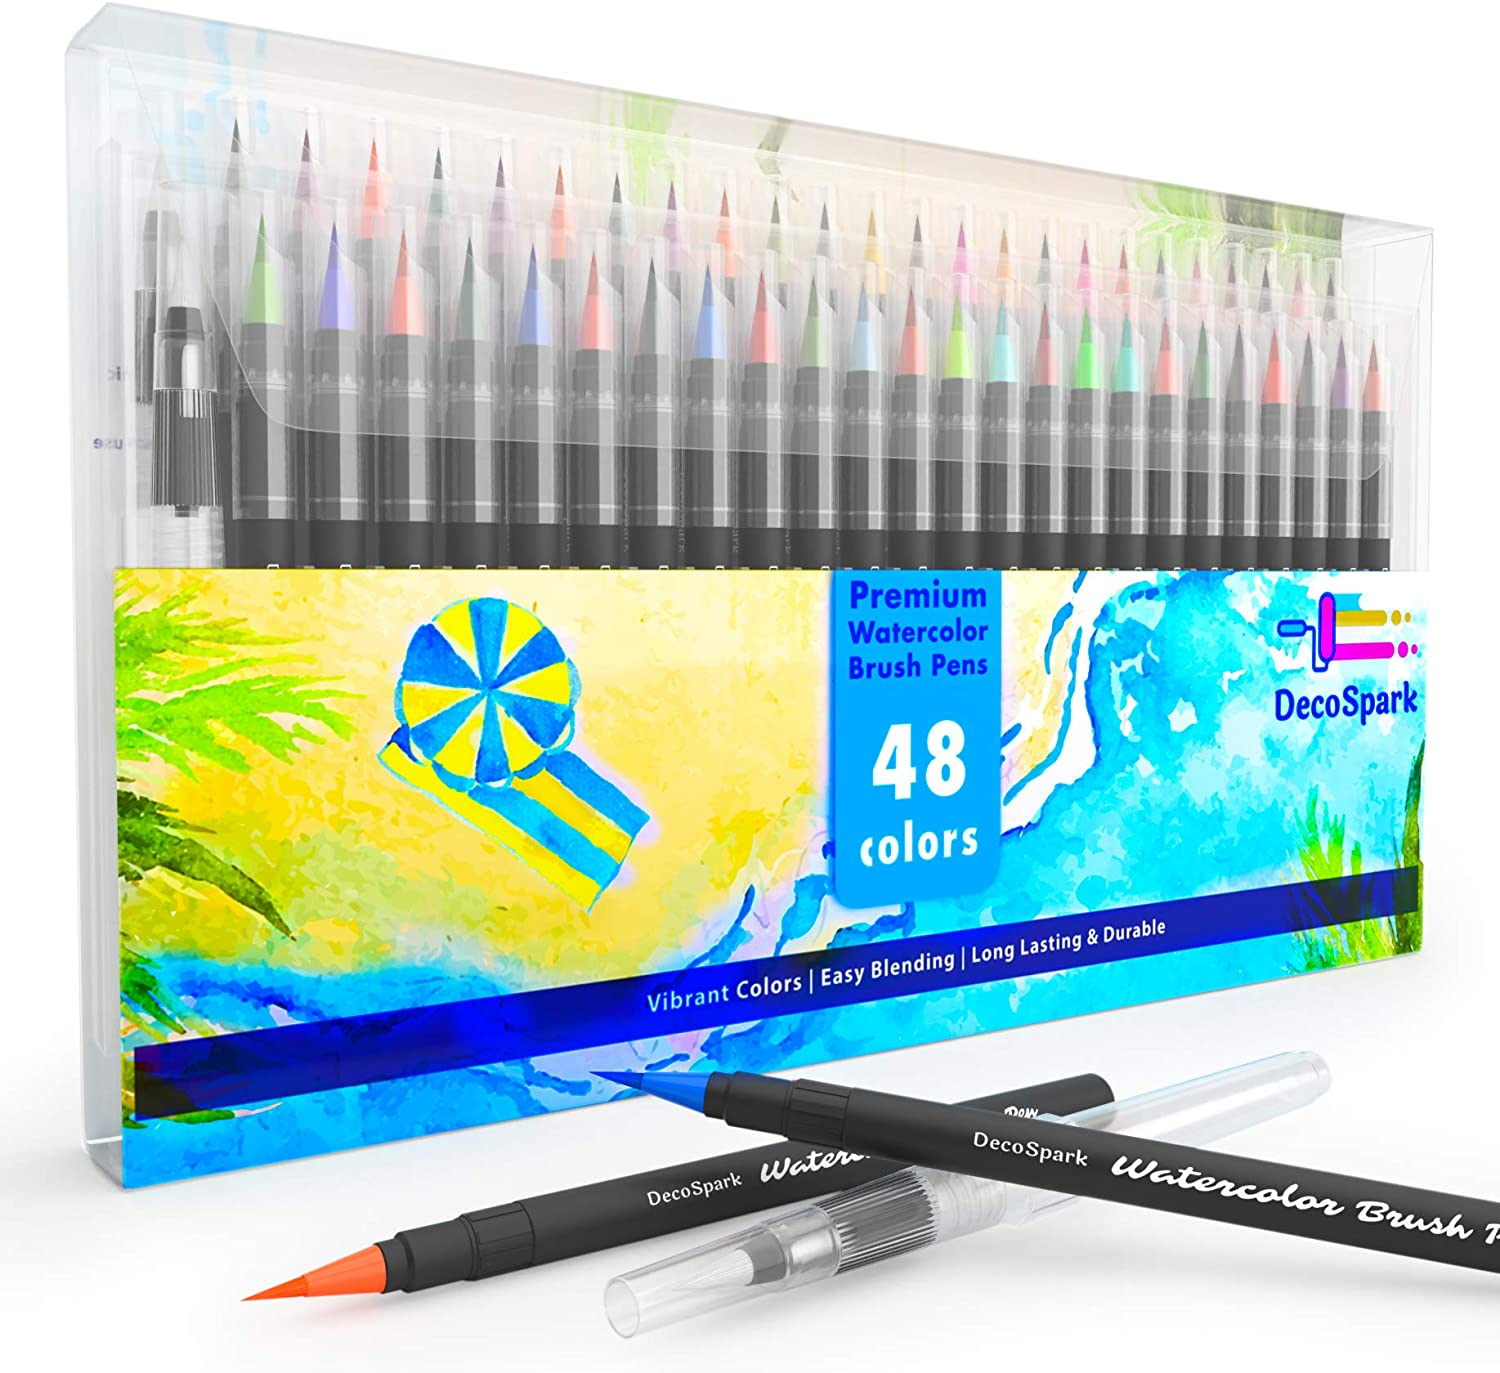 - Amazon.com : DecoSpark Watercolor Brush Pens Set 48 Colors